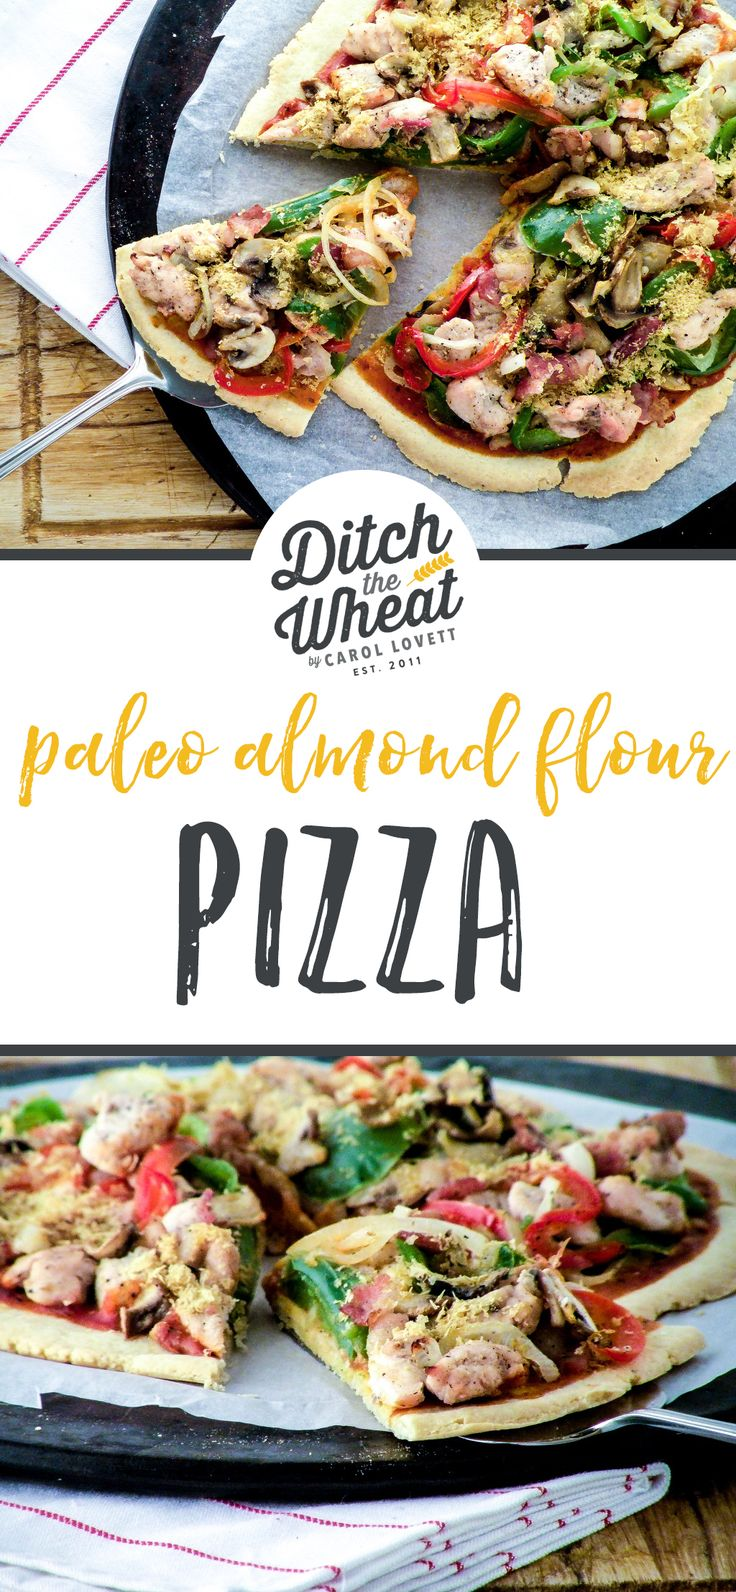 A delicious thin crust that holds all of the toppings! This crispy paleo pizza dough is a must-make recipe for anyone looking to @Ditchthewheat!